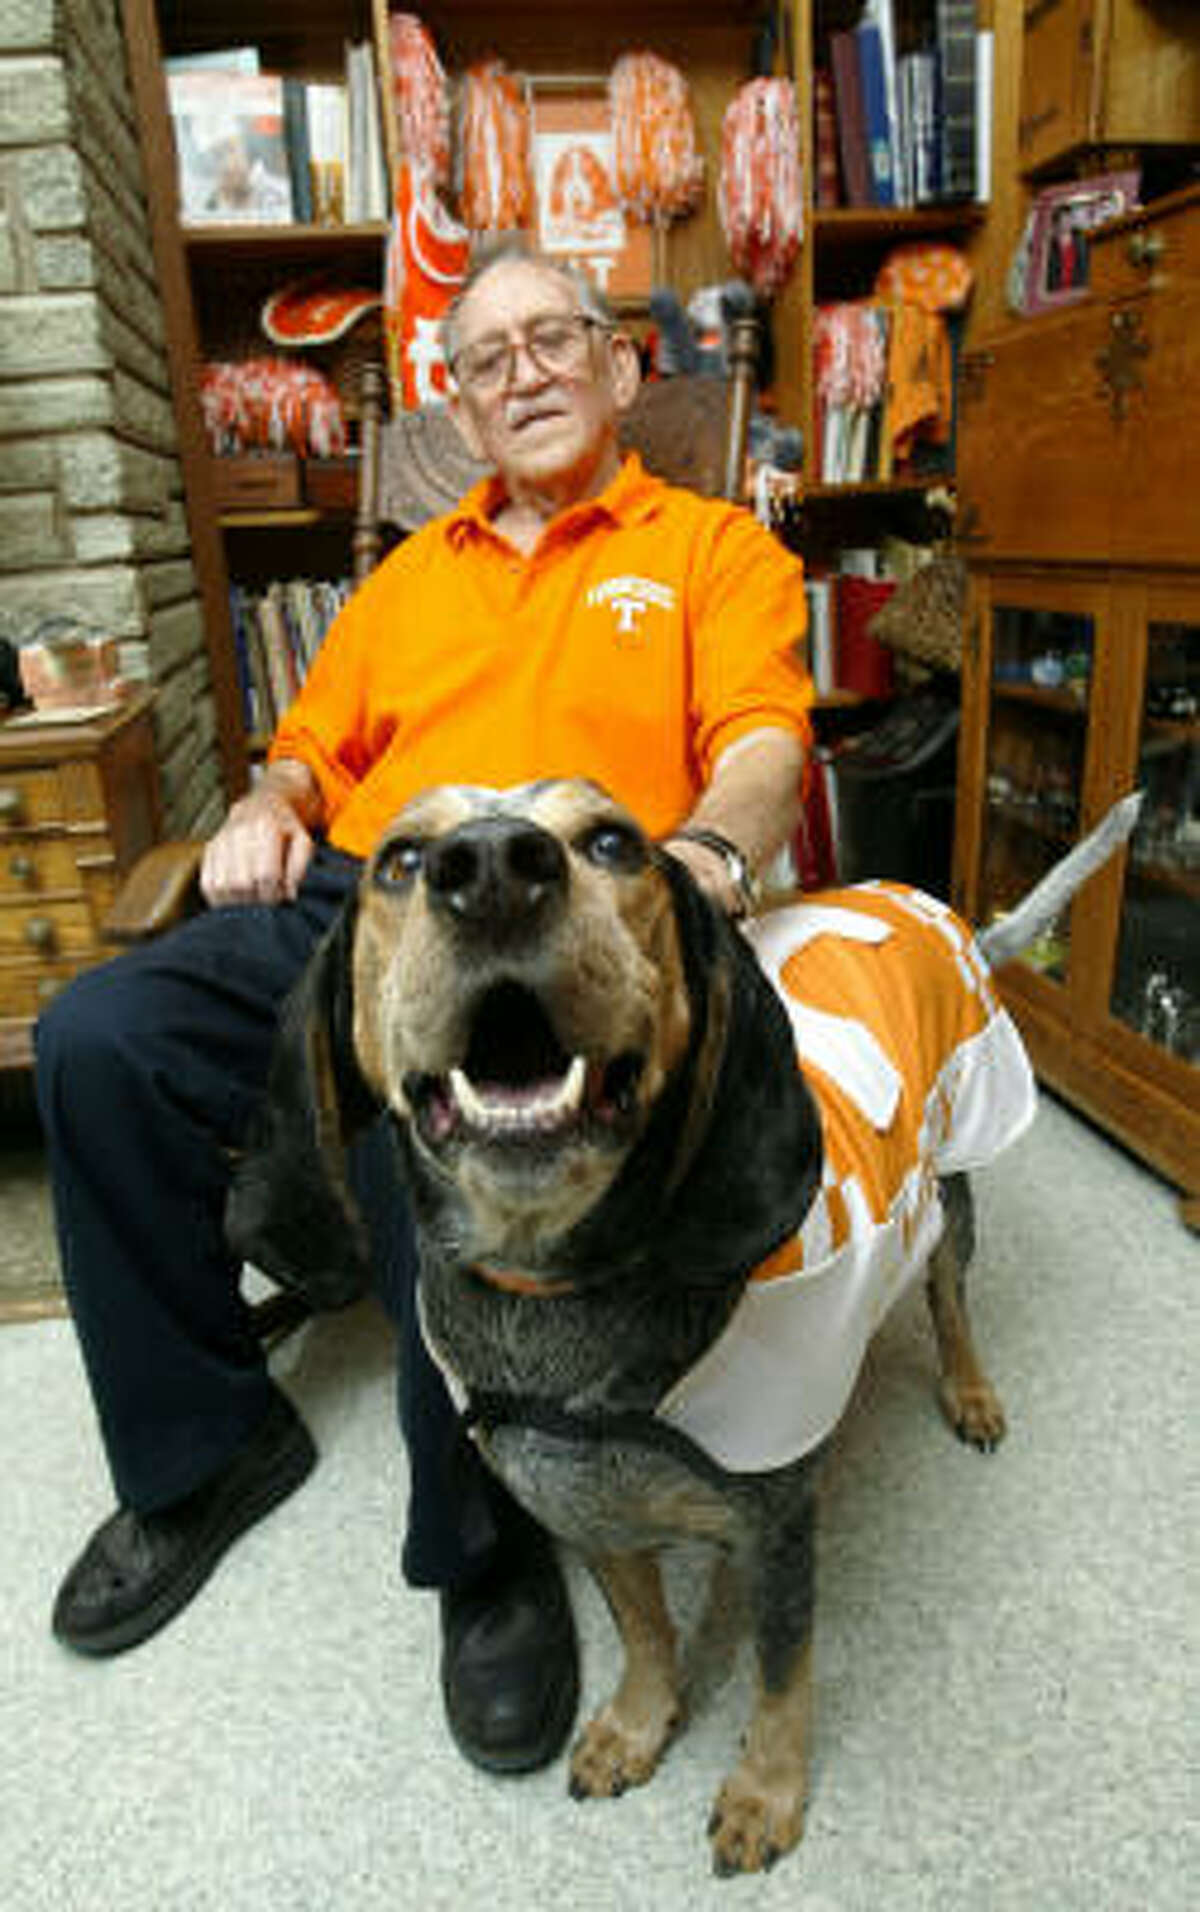 ** FILE ** Earl Hudson, owner of Smokey, the University of Tennessee mascot, poses for a photo at his home Monday, Sept. 22, 2003, in Knoxville, Tenn. Smokey the Eighth will be retired as the University of Tennessee's mascot after the Peach Bowl. Veterinarians at the university say the blue tick coon hound has cancer. The current Smokey has been the team mascot since 1995 and is eighth in a line of Smokies that began in 1953.